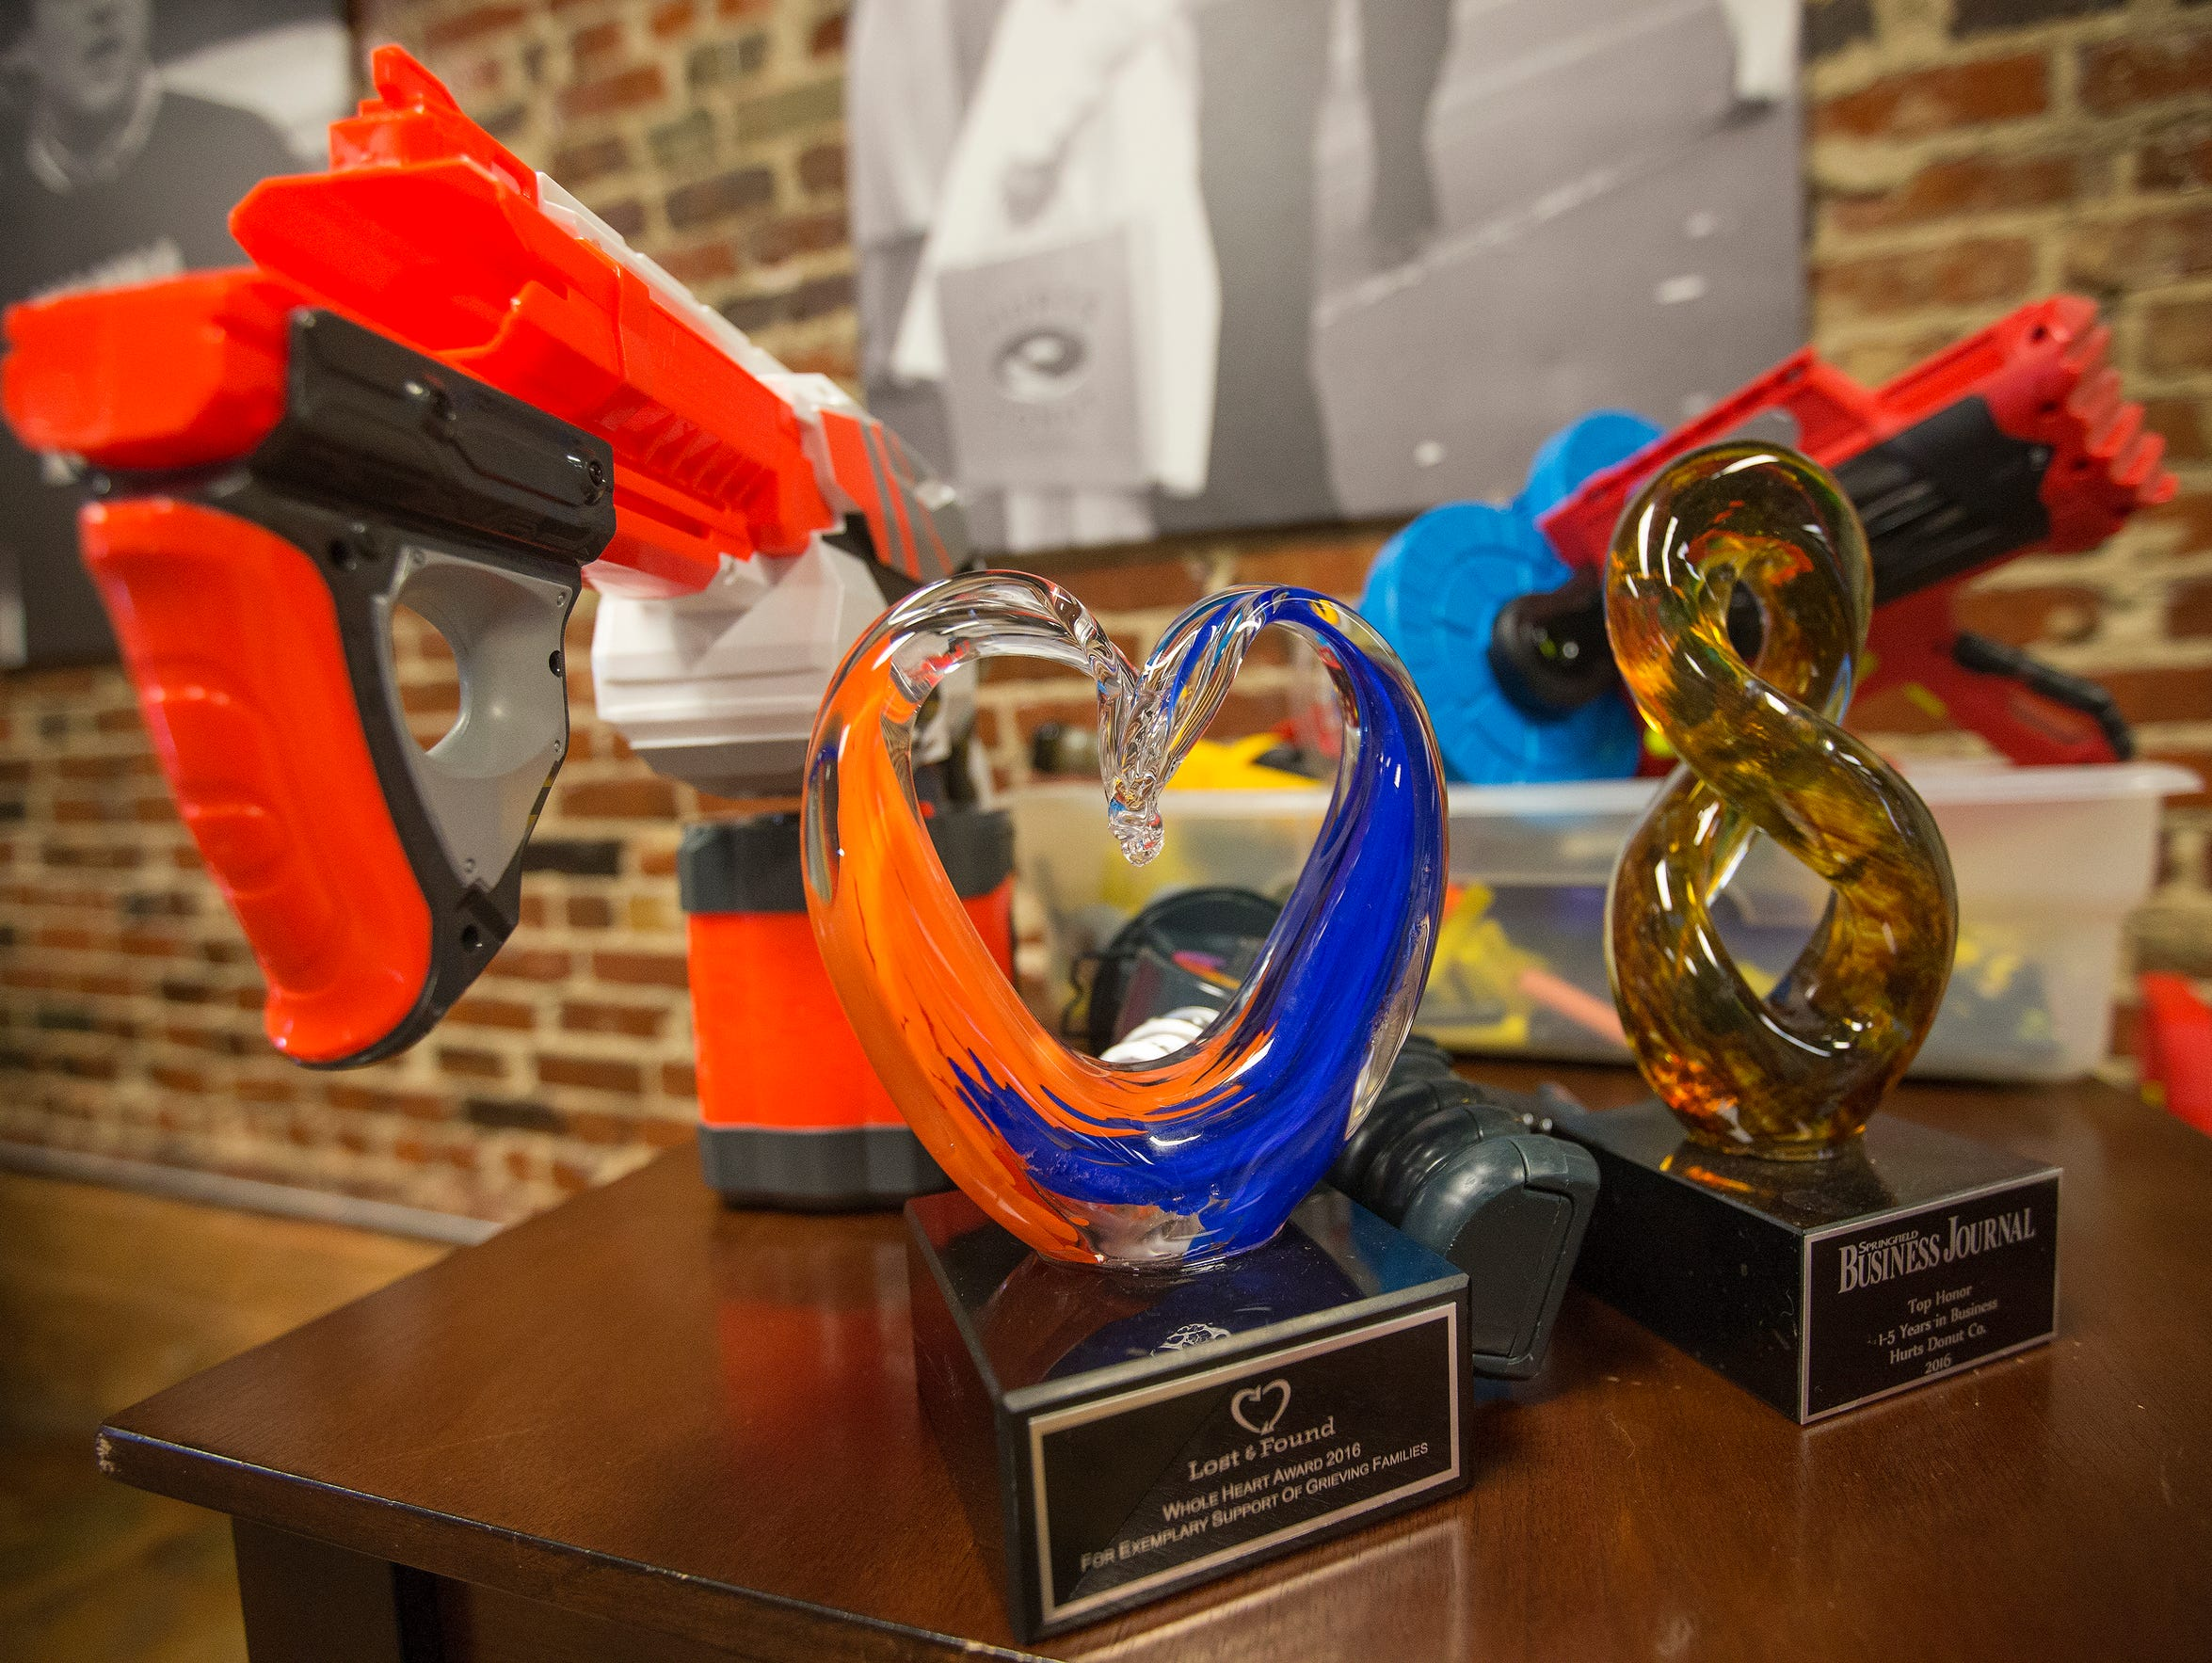 Nerf guns sit near a couple of awards at the Hurts